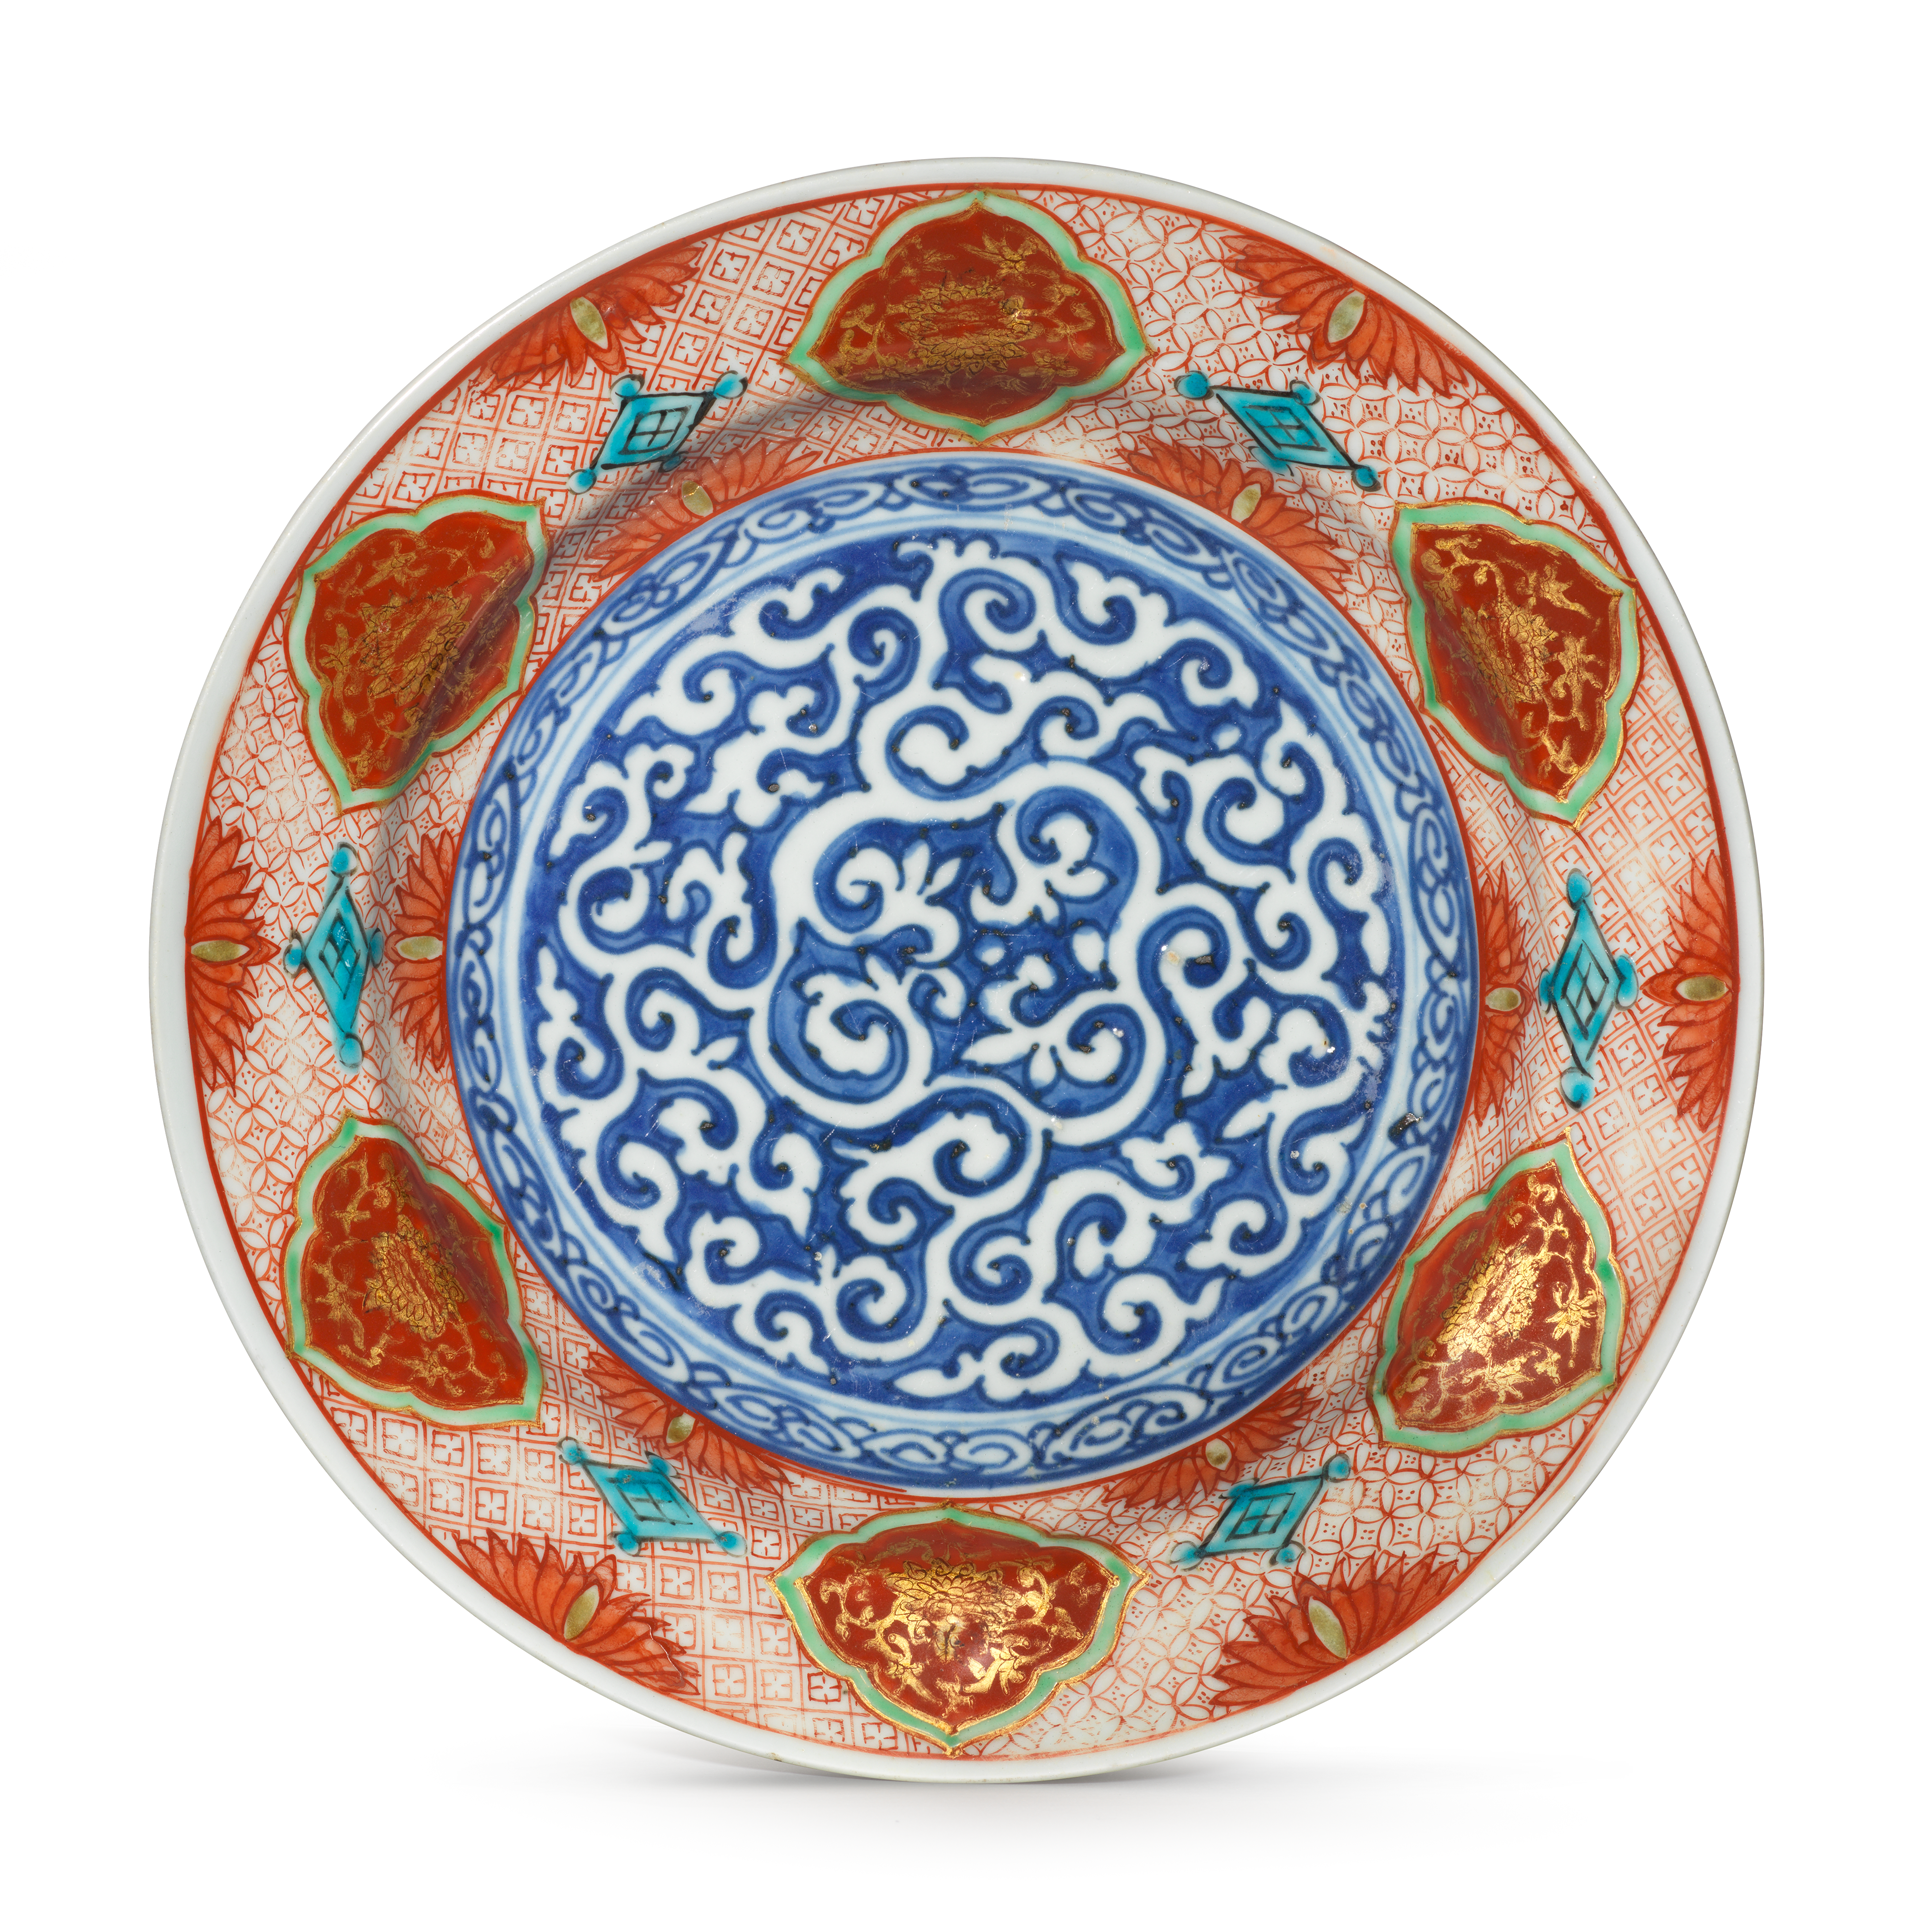 Kinrande Plate, Porcelain decorated in underglaze enamels, and gold, the second half of the 16th century